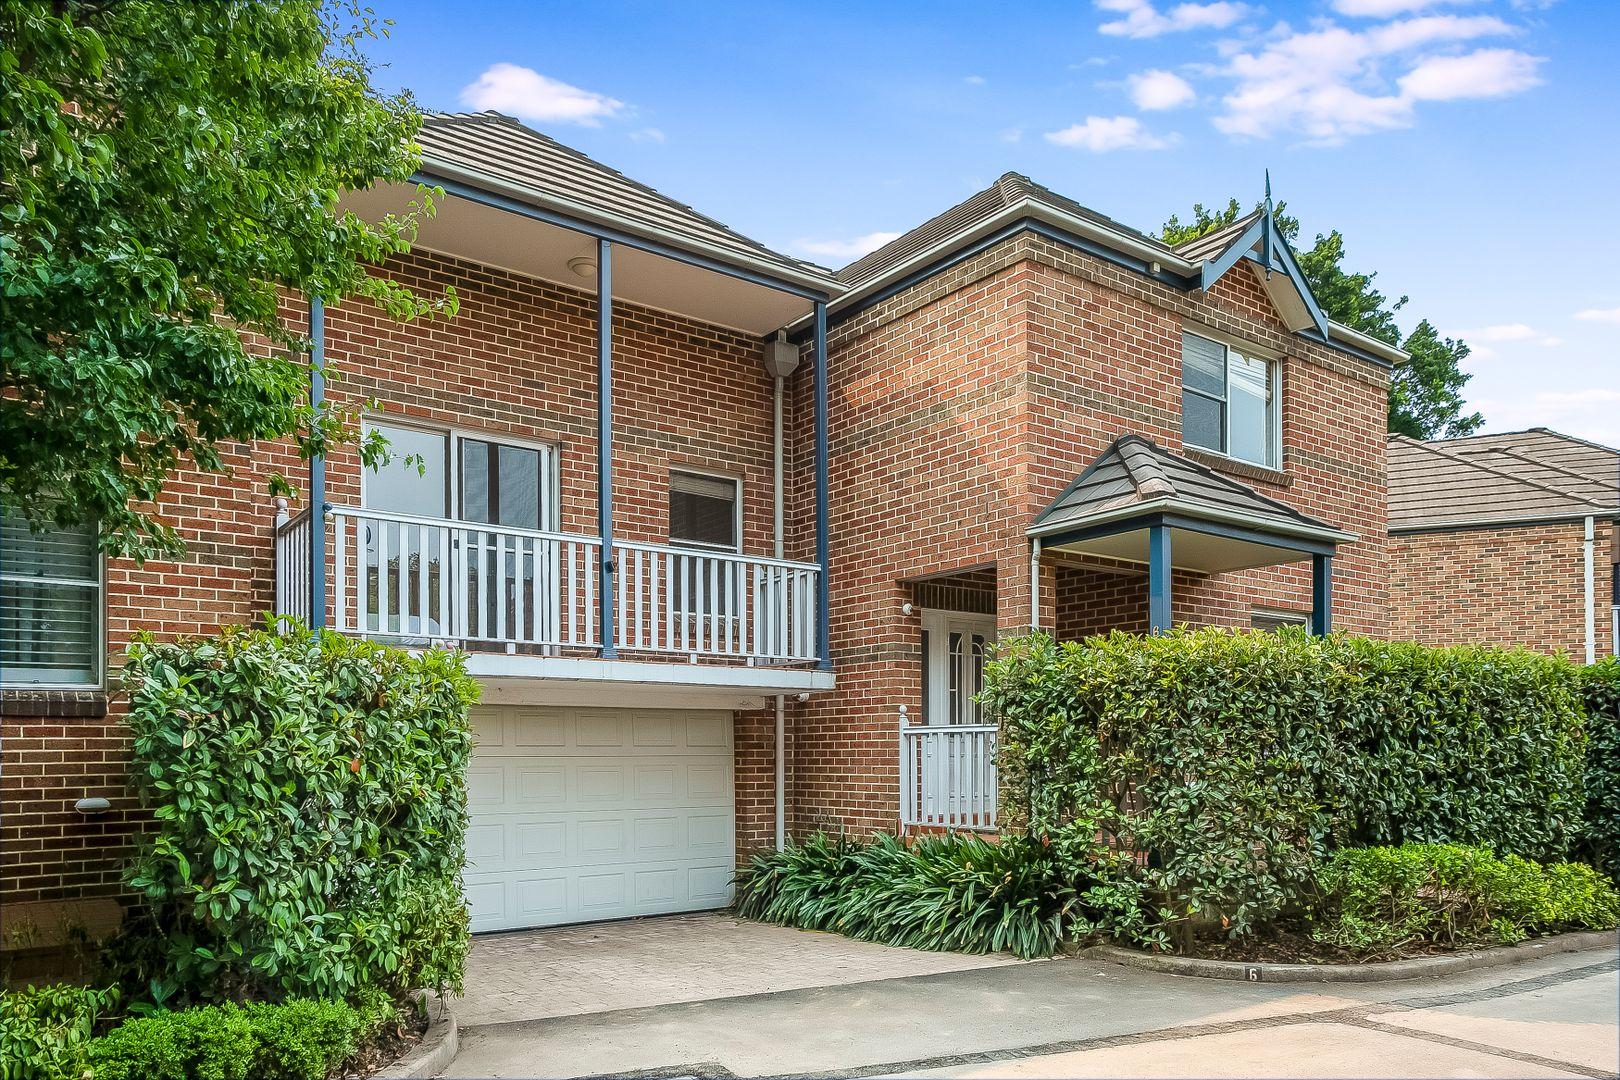 6/8 Shinfield Avenue, St Ives NSW 2075, Image 0